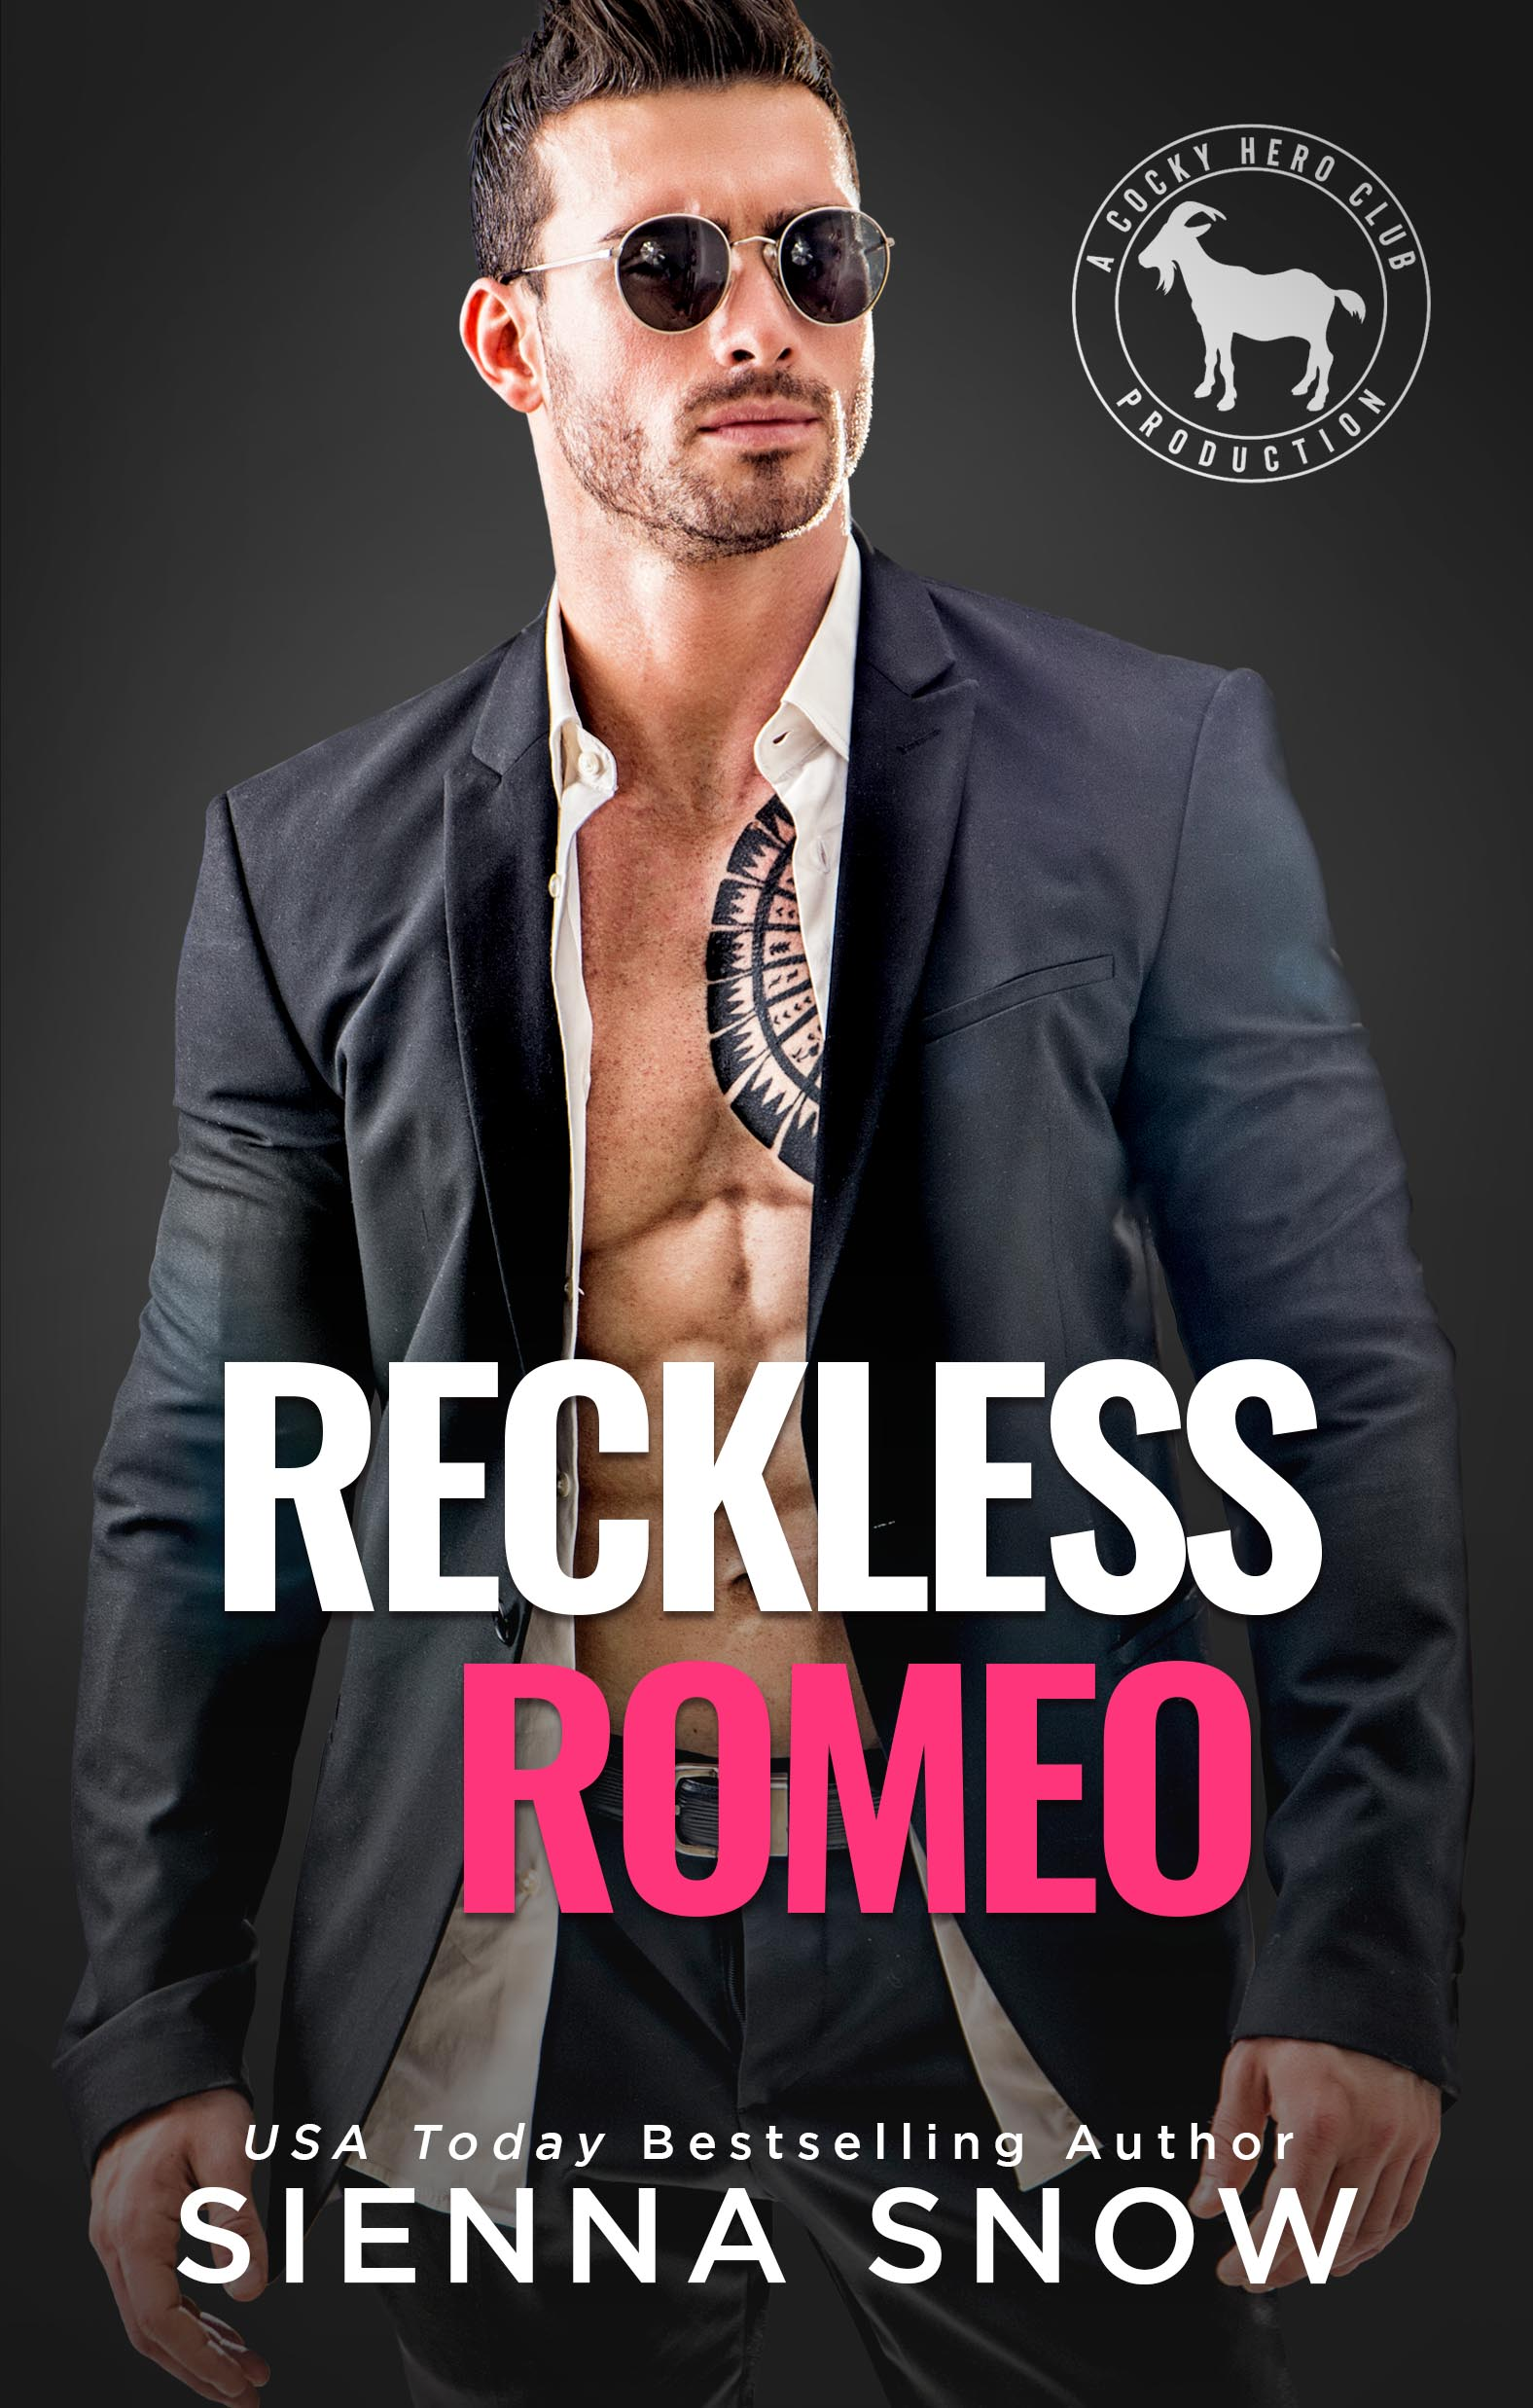 Excerpt: Reckless Romeo